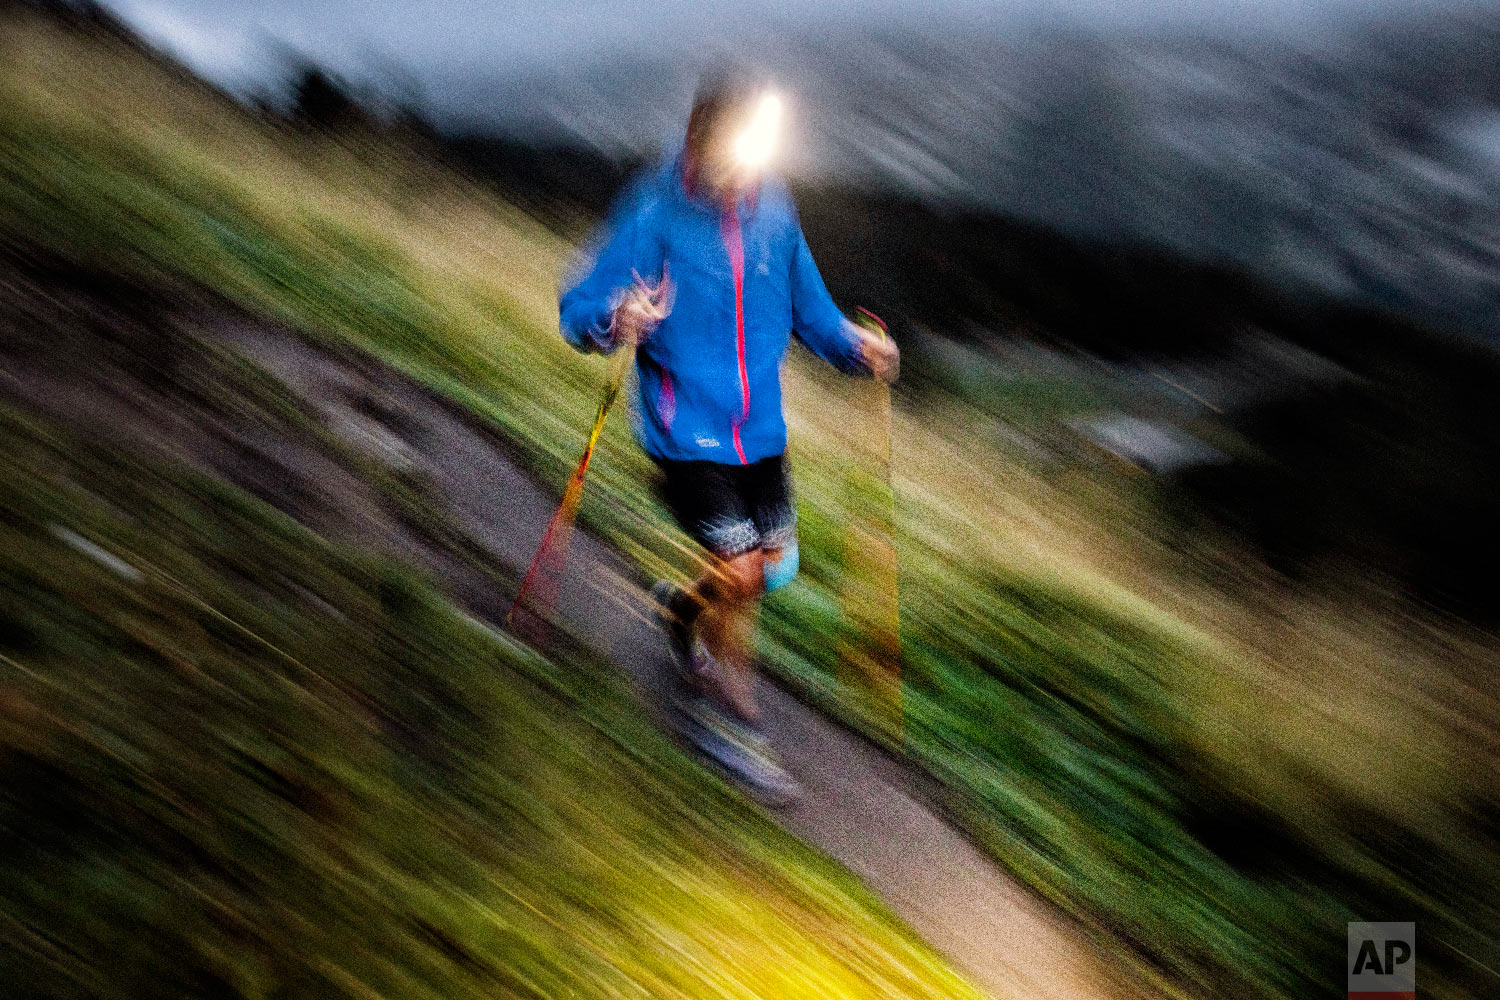 A competitor runs as he competes in the 170km Ultra-Trail of Mont-Blanc (UTMB) race, near Chamonix, French Alps, Sept 2, 2018. (AP Photo/Laurent Cipriani)